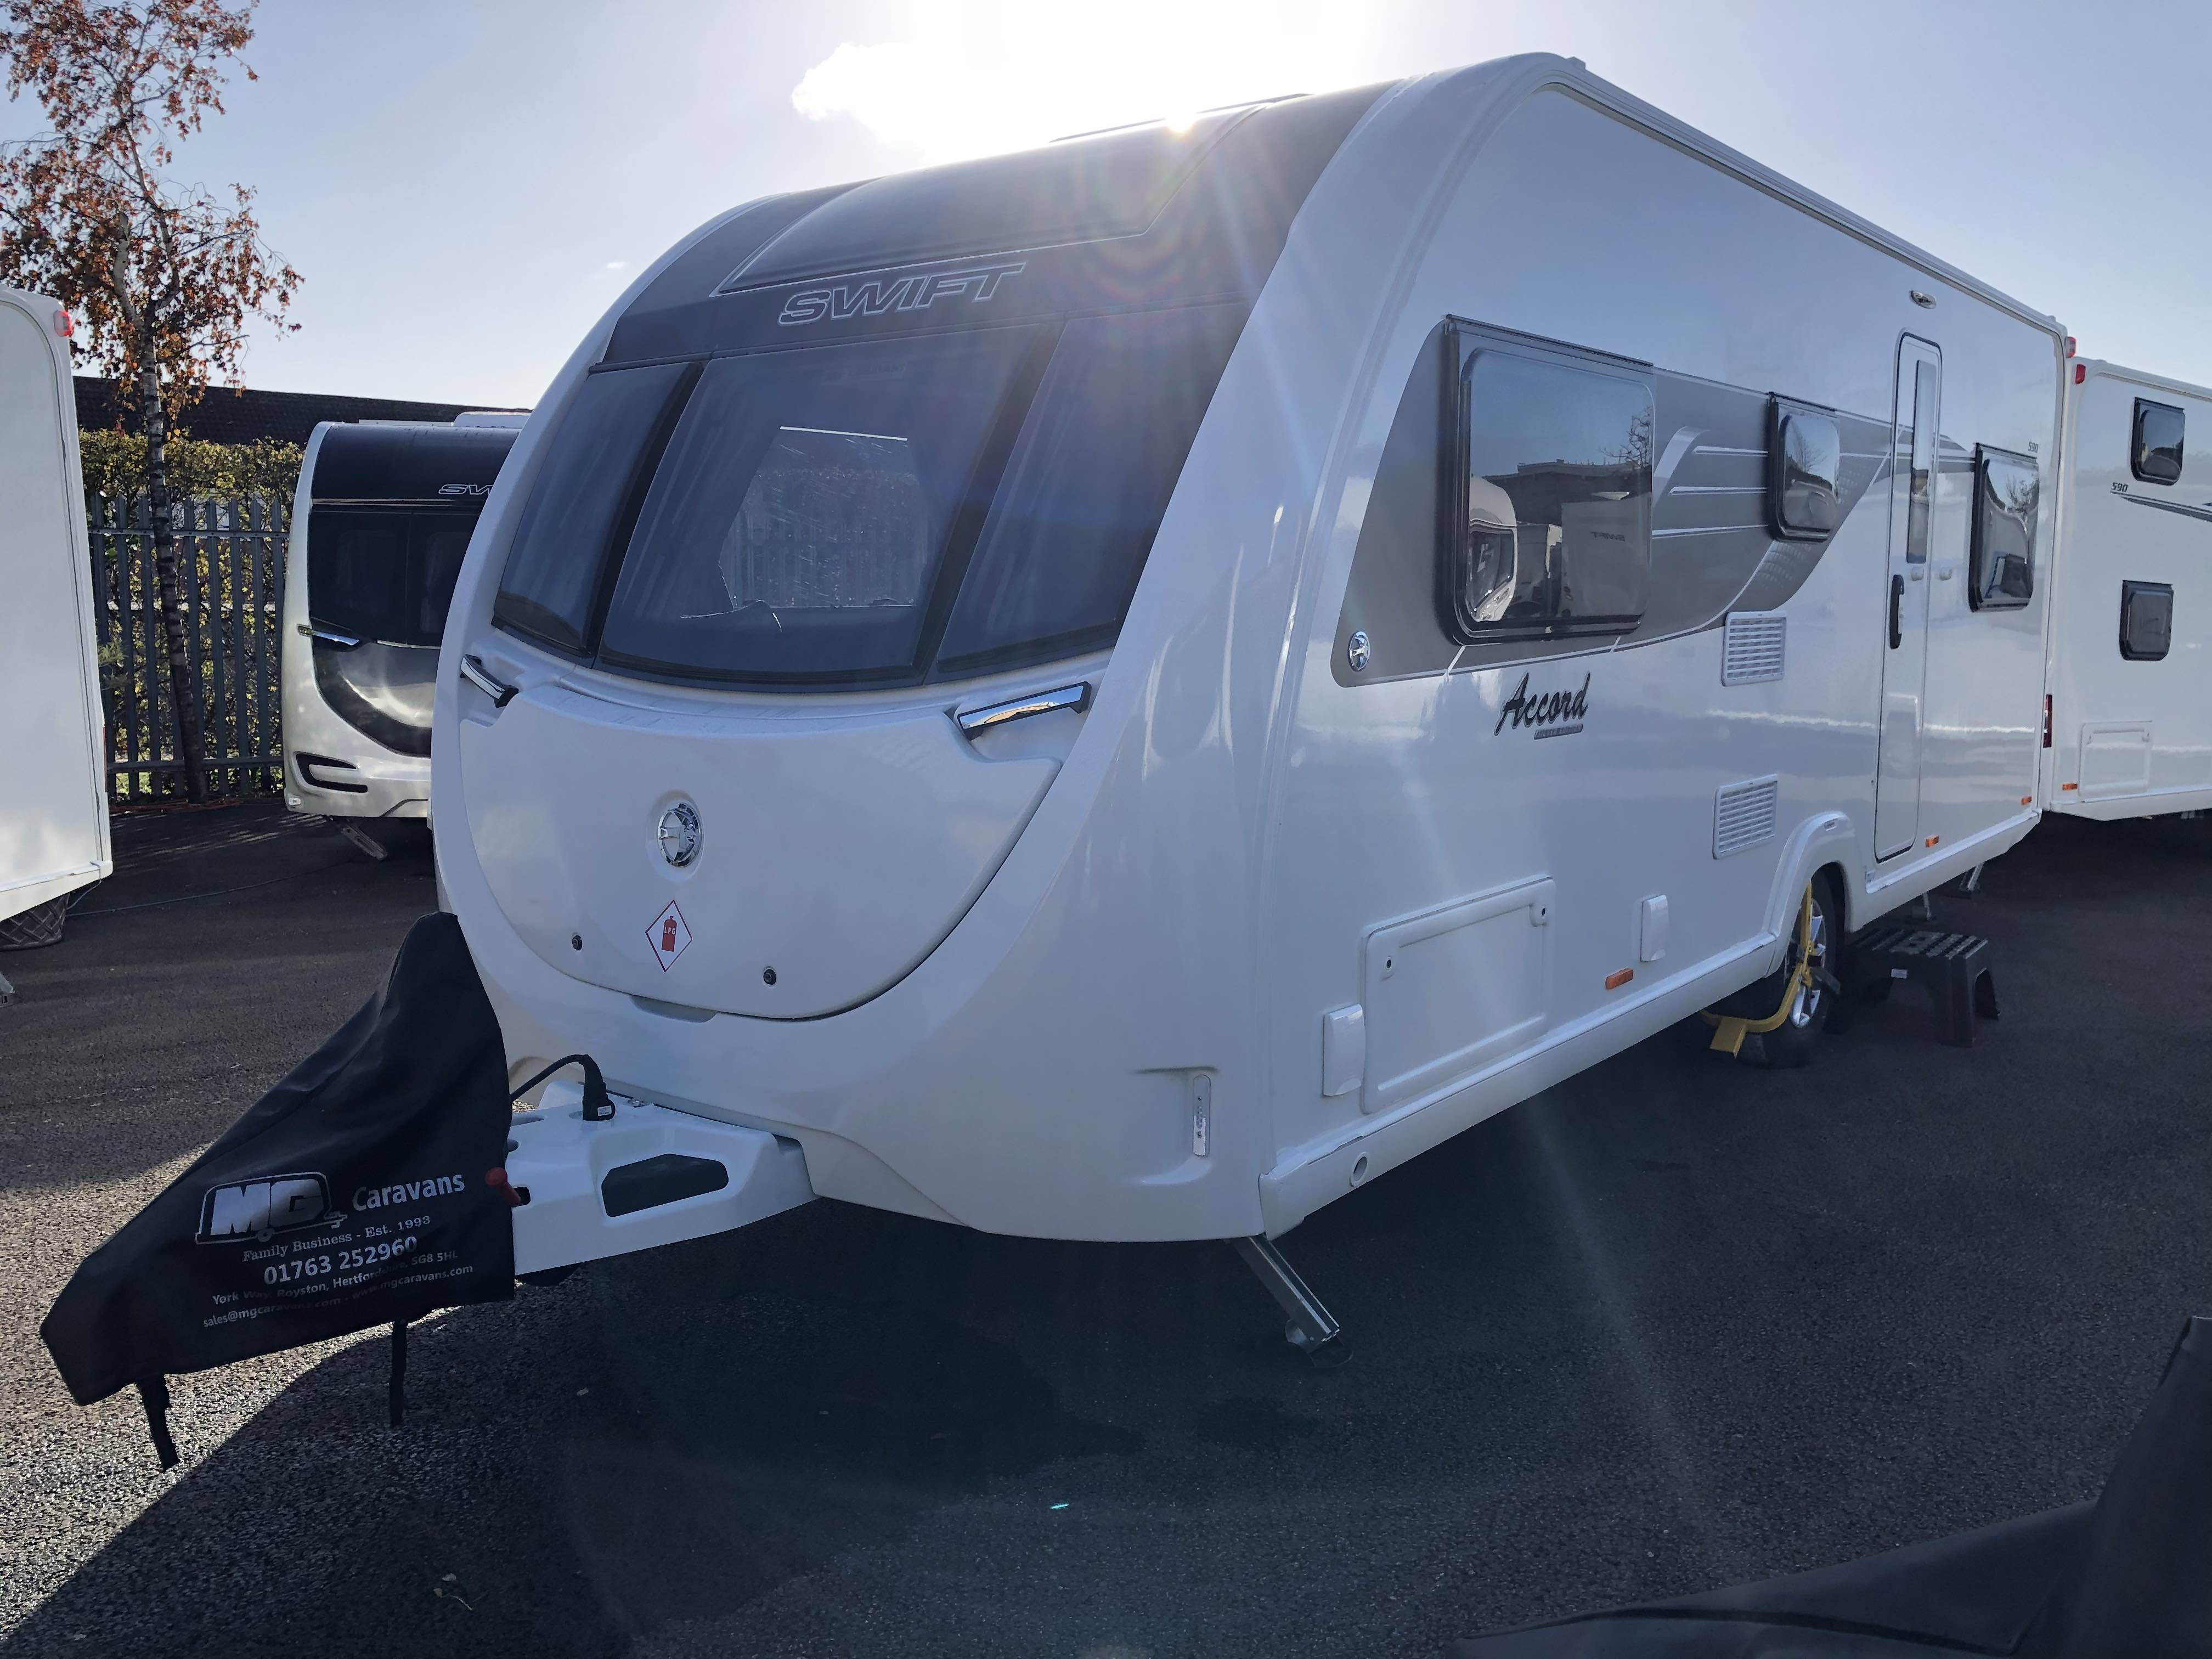 2021 Swift Accord 590 – *Demonstrator in Stock & Factory Fresh Models Available NOW!*